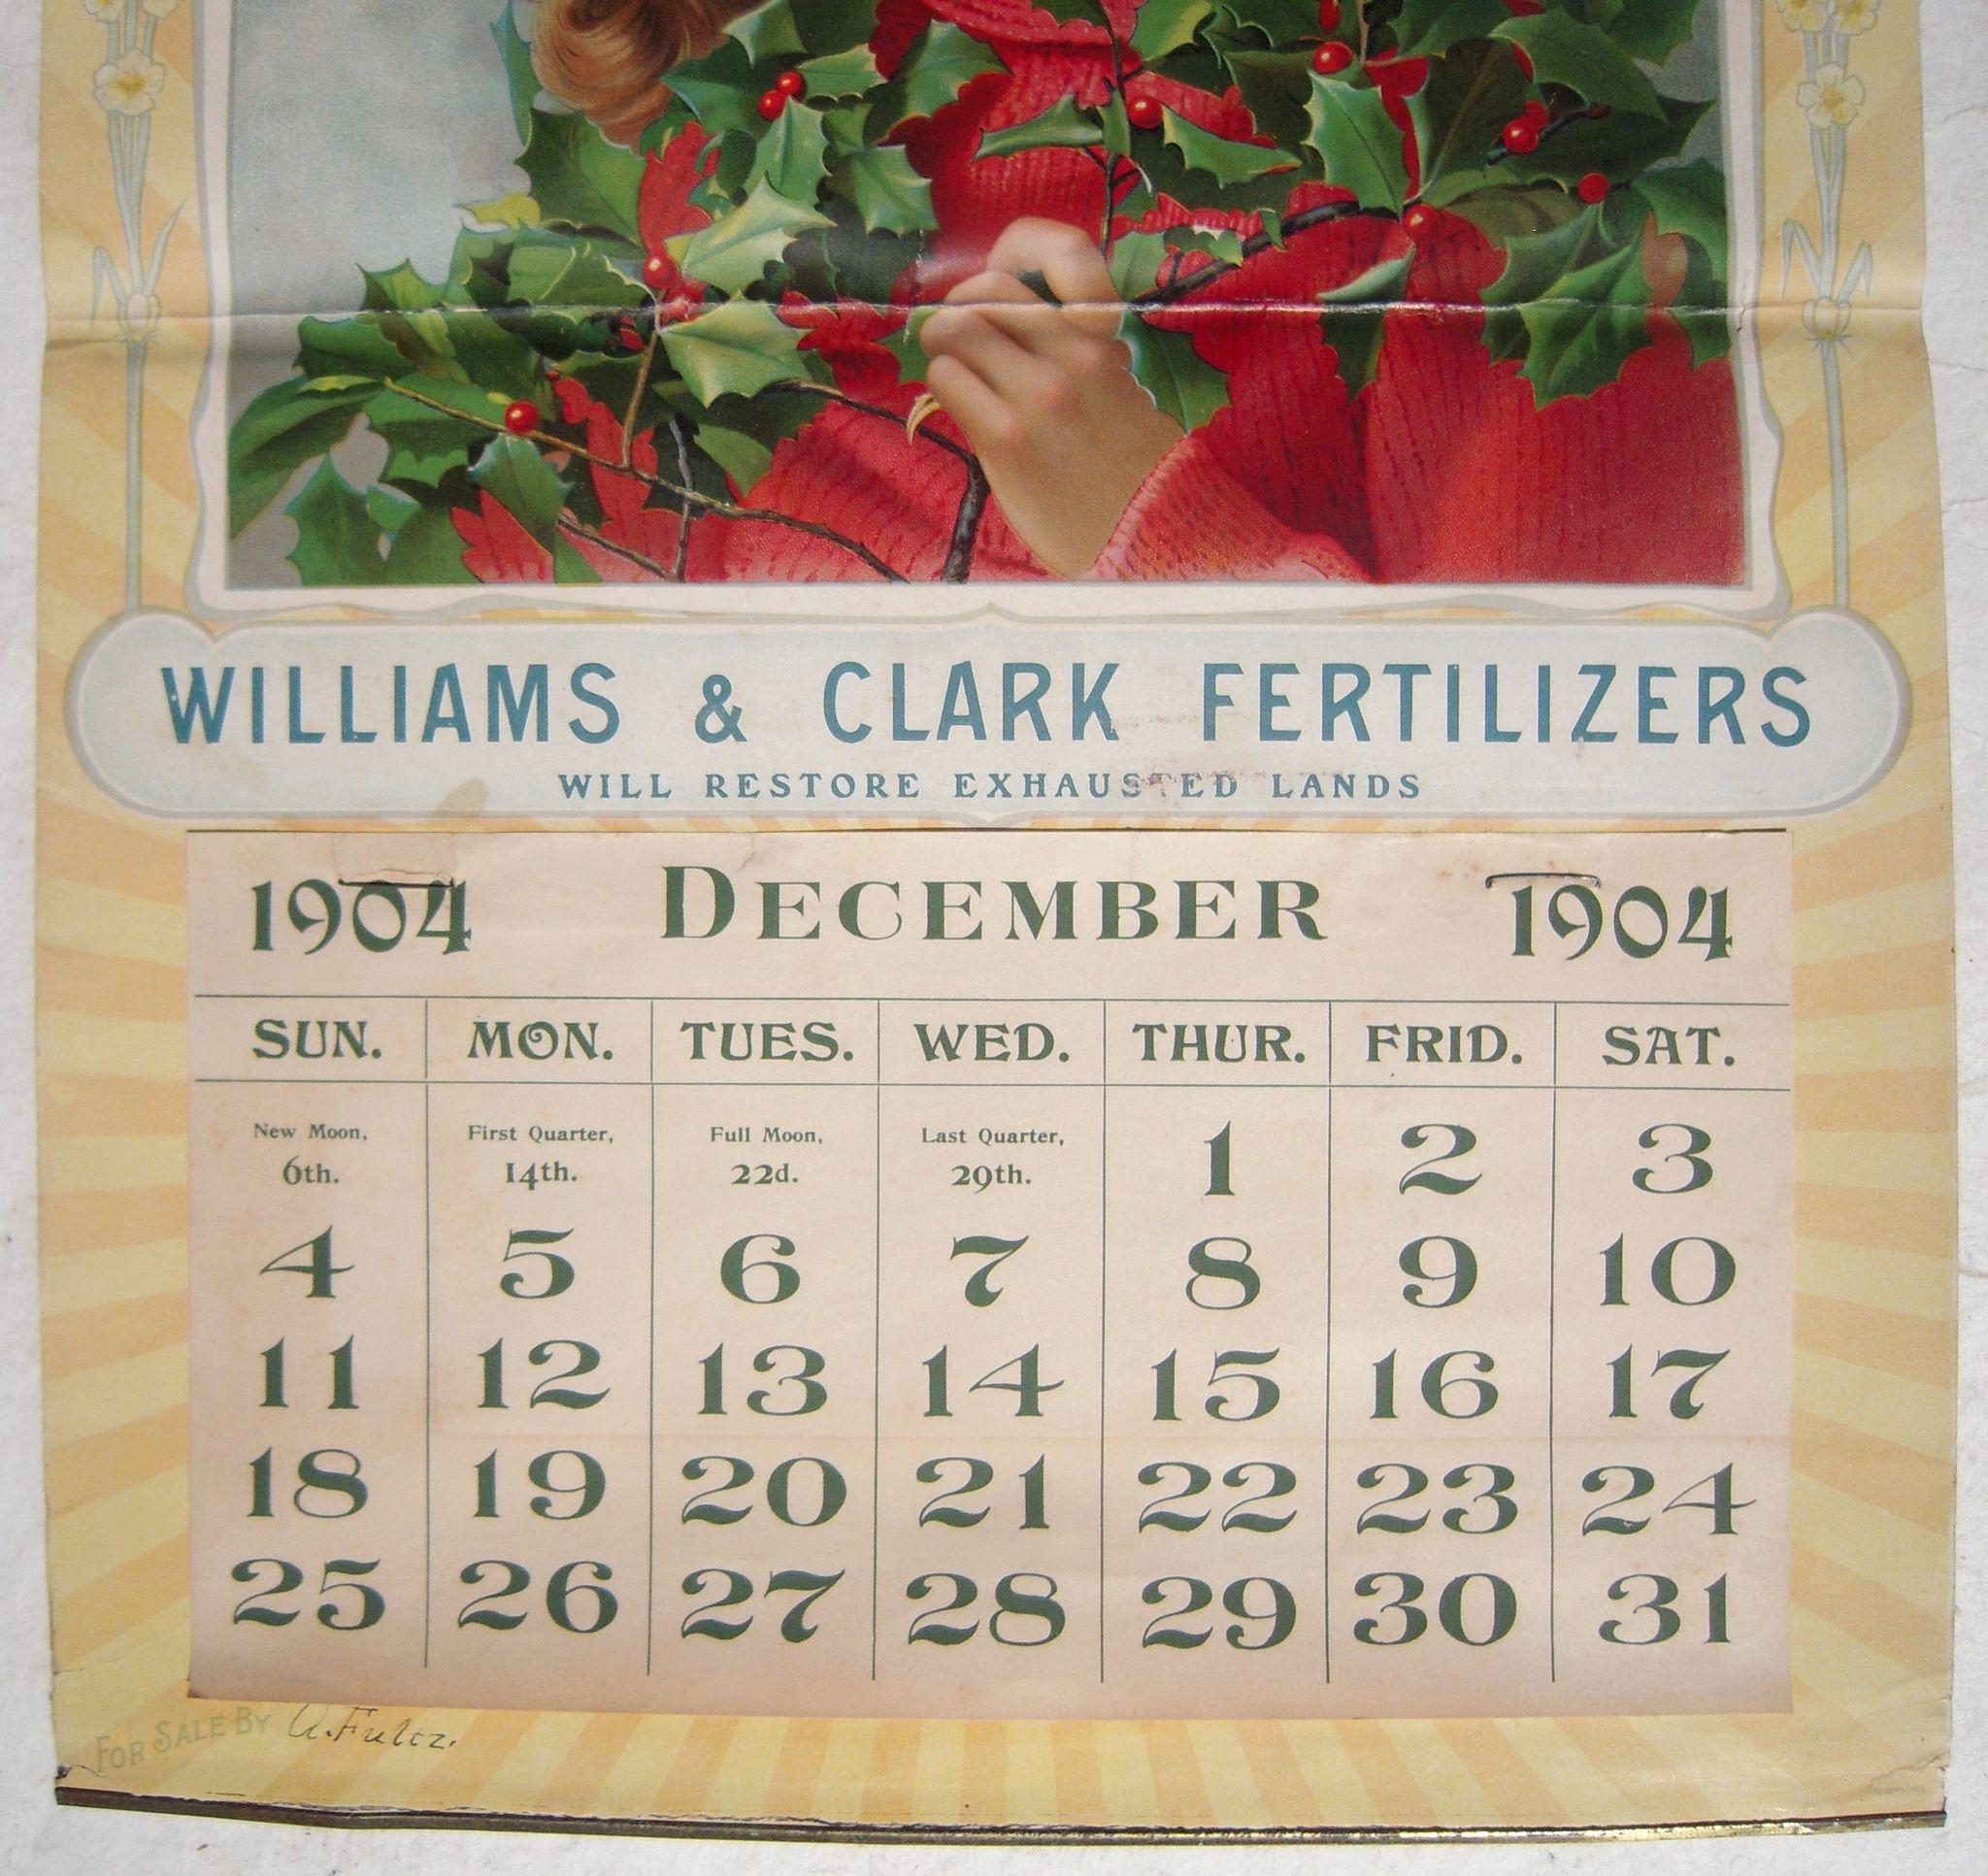 Large Full Color 1904 Fertilizer Advertising Calendar From